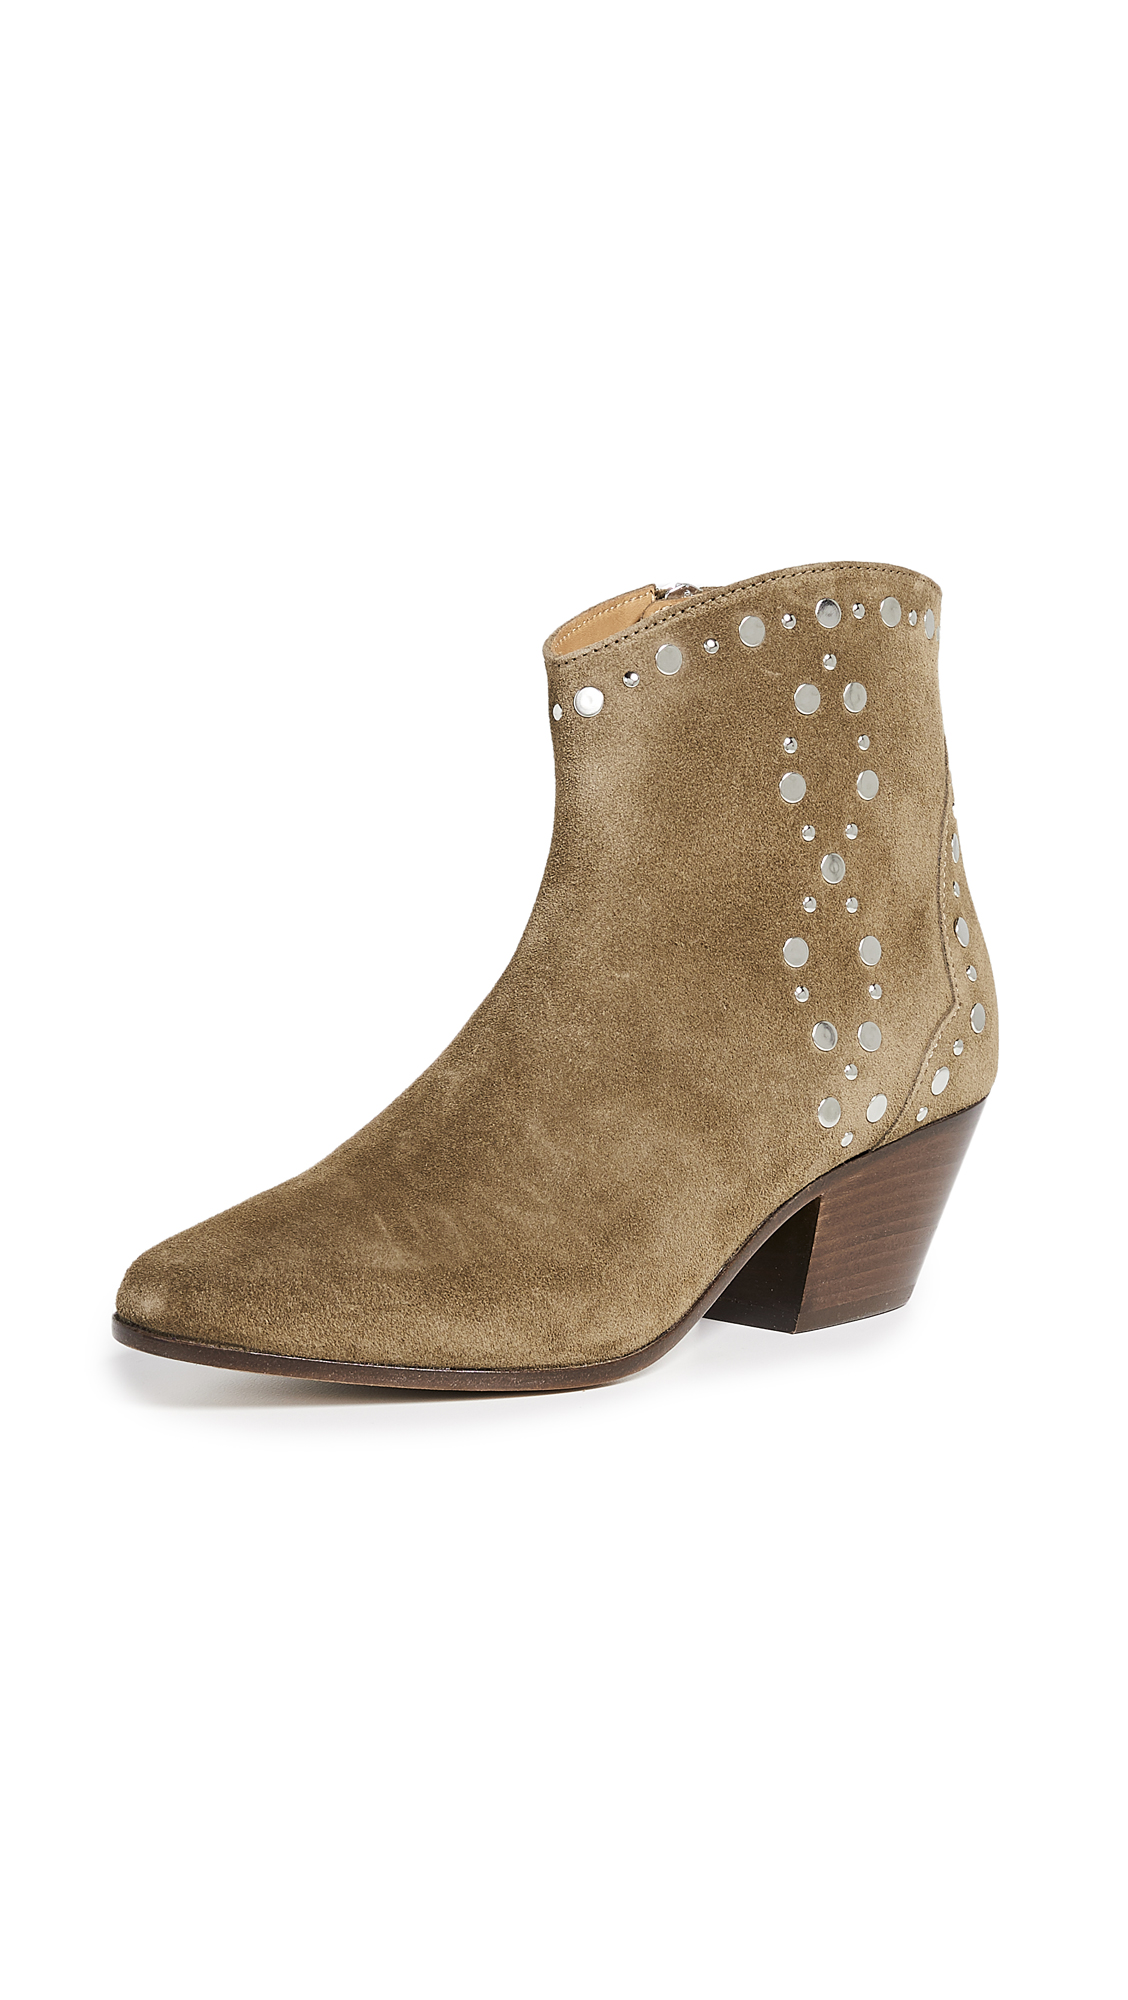 Isabel Marant Dacken Booties - Taupe